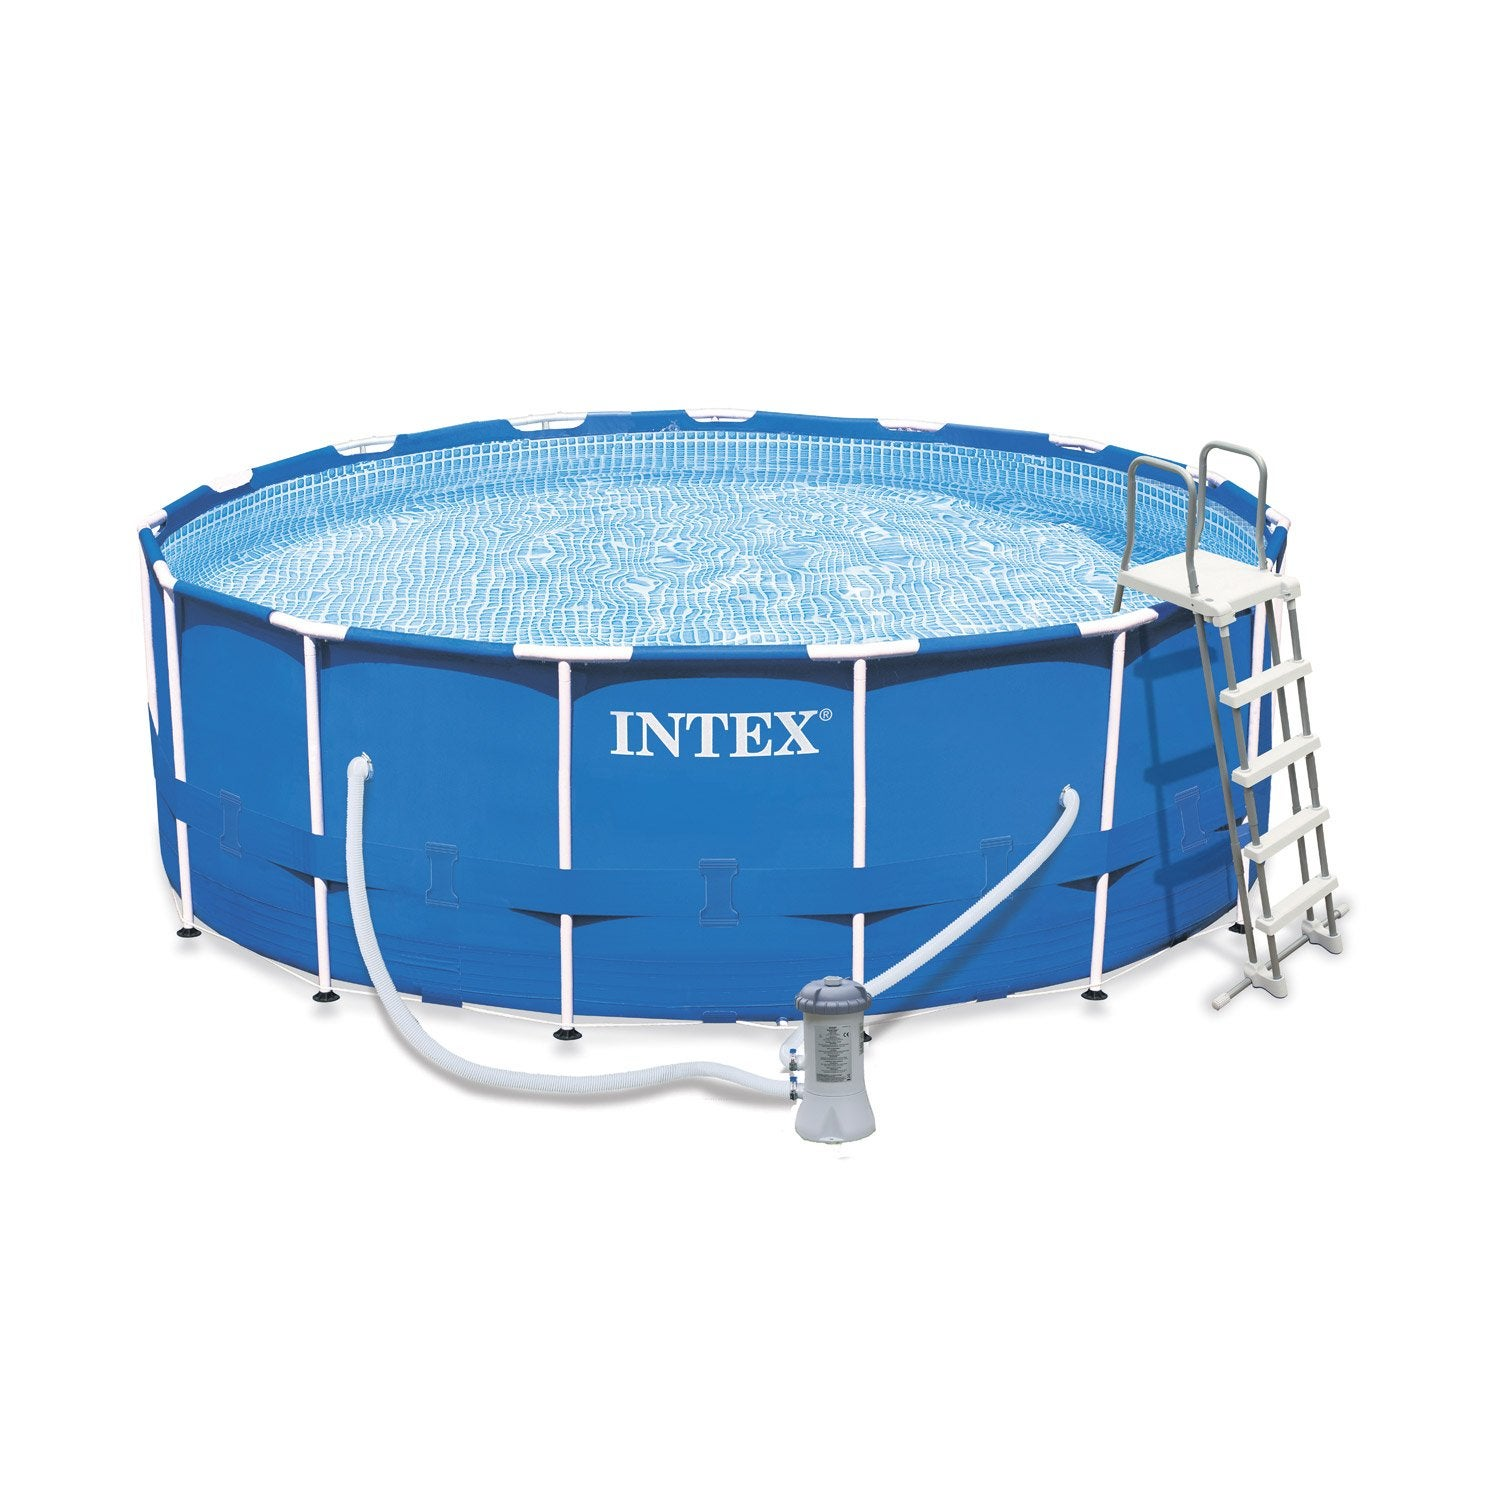 Piscine hors sol autoportante tubulaire metal frame intex for Piscine tubulaire leroy merlin